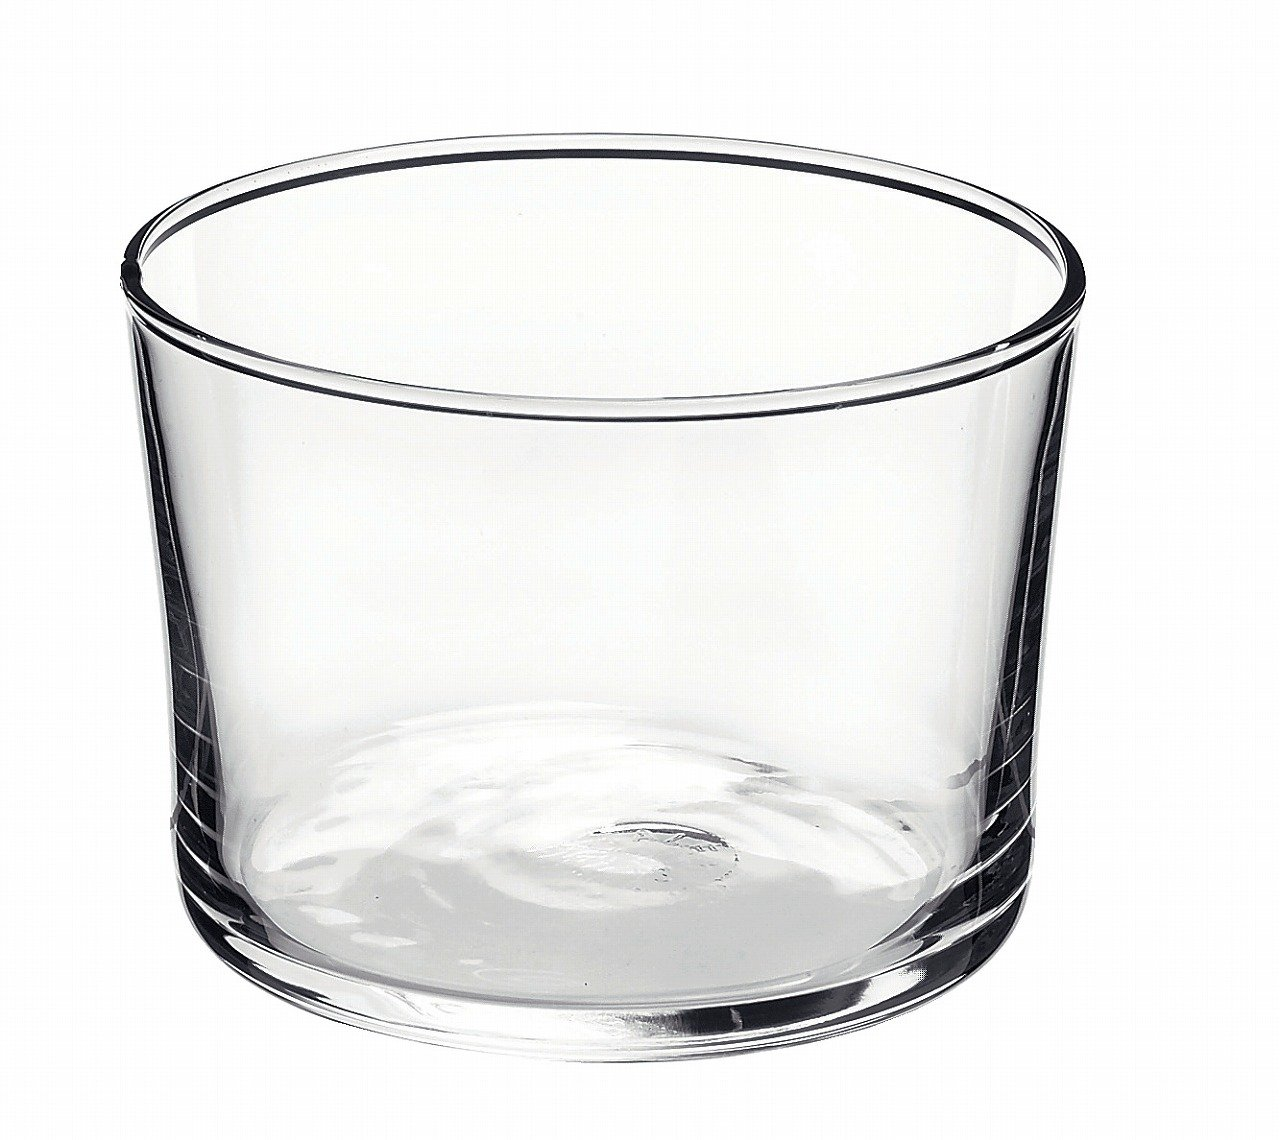 Bormioli Rocco 5154420 Bodega Small Glass Tumblers, Pack of 3, 20cl Pengo